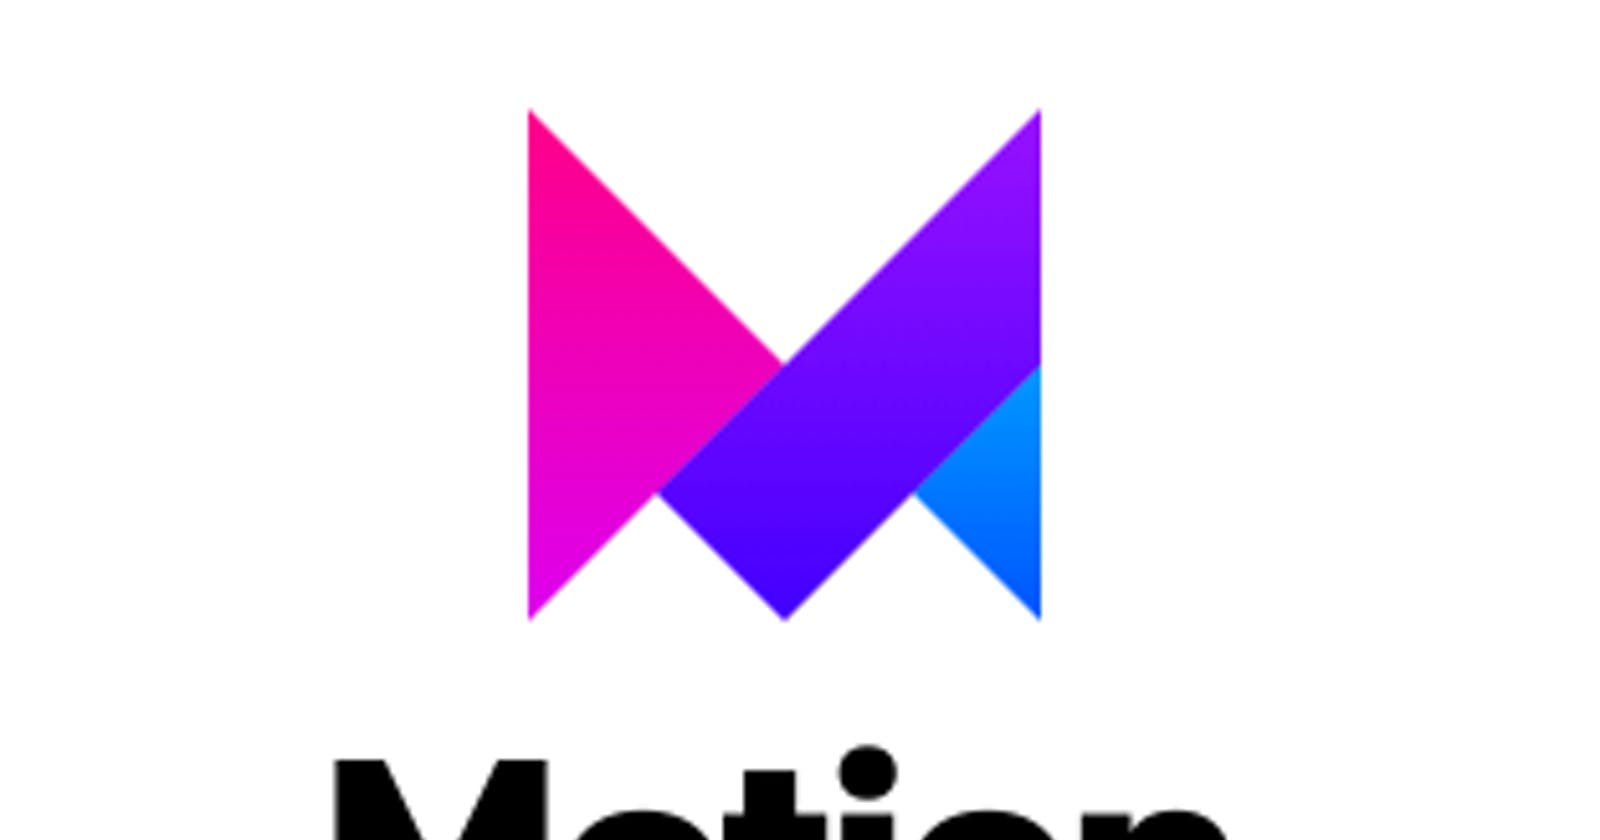 Create Page Transitions in Next.js with Framer Motion